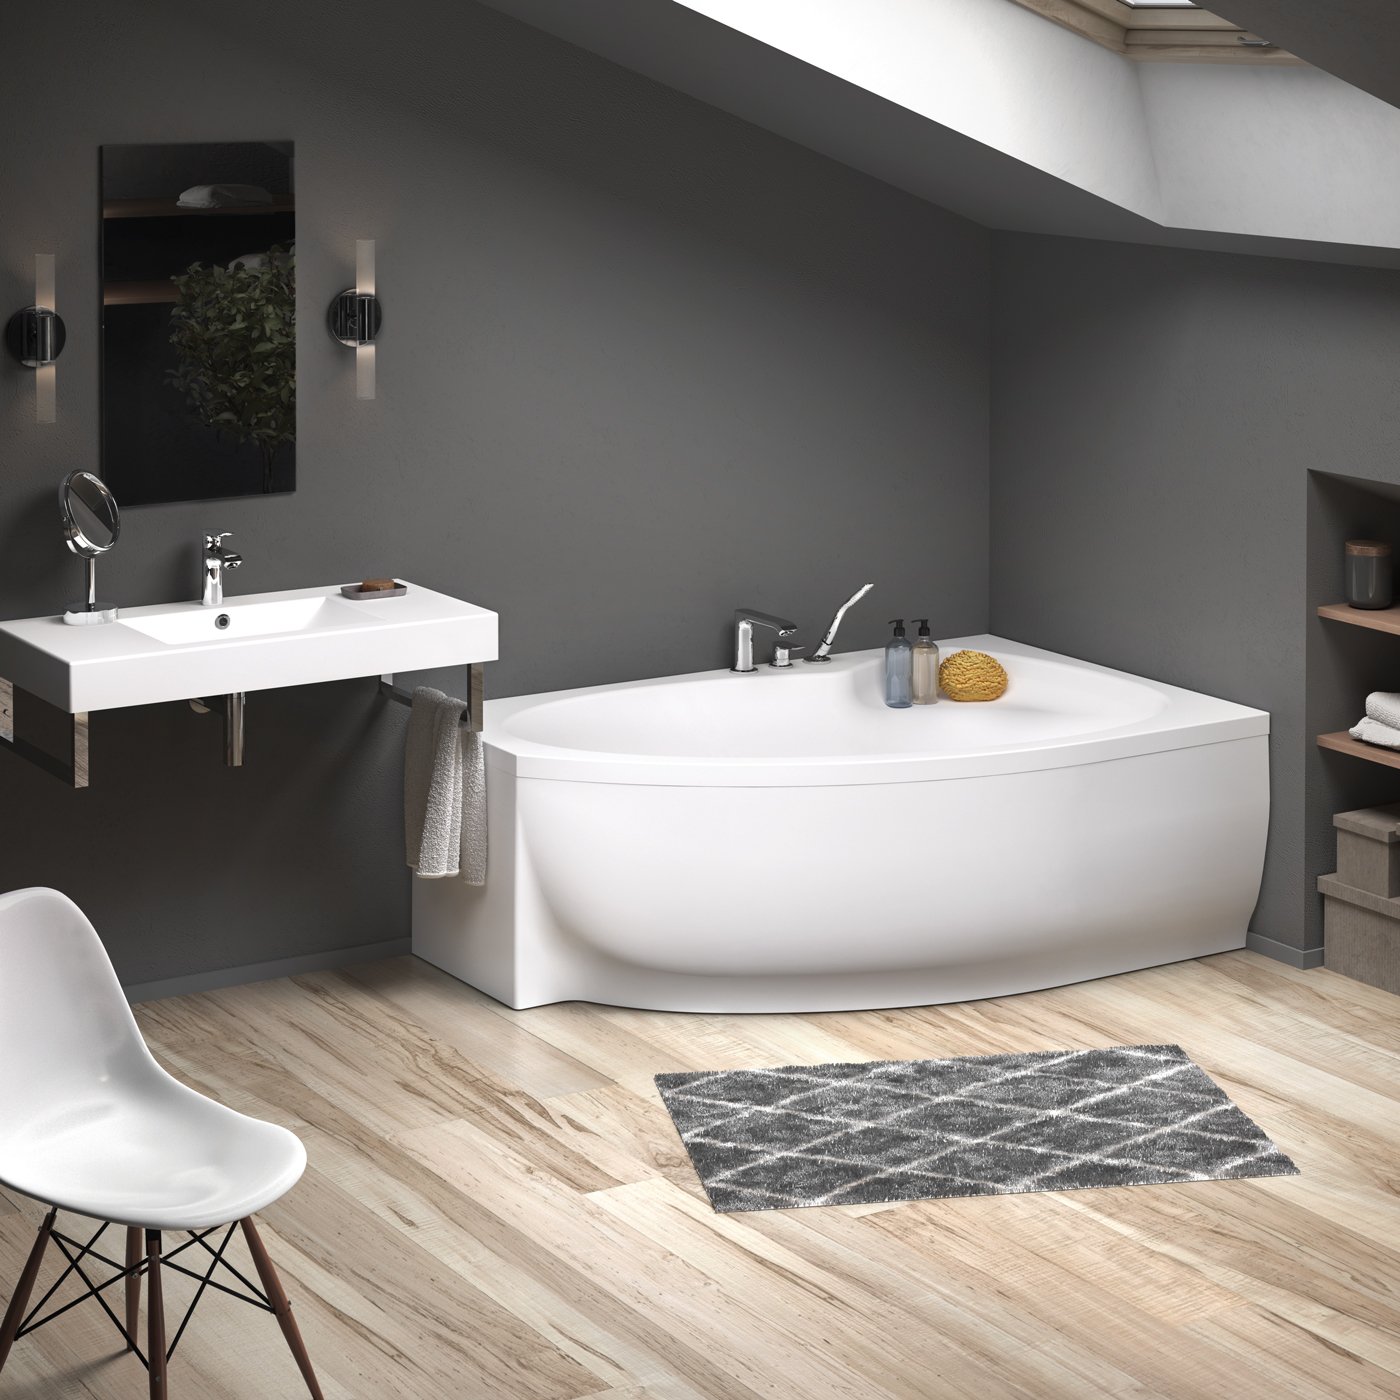 Cello About Art No Drawings Bathtubs Massage Systems Showertrays Bathroom Furniture Washbasins Back Paa Baths Acrylic Cello 1700x1100mm Interior White Paa Baths Acrylic Corner Bathtub Cello 1700x1100mm White With Front Panel Paa Akrila